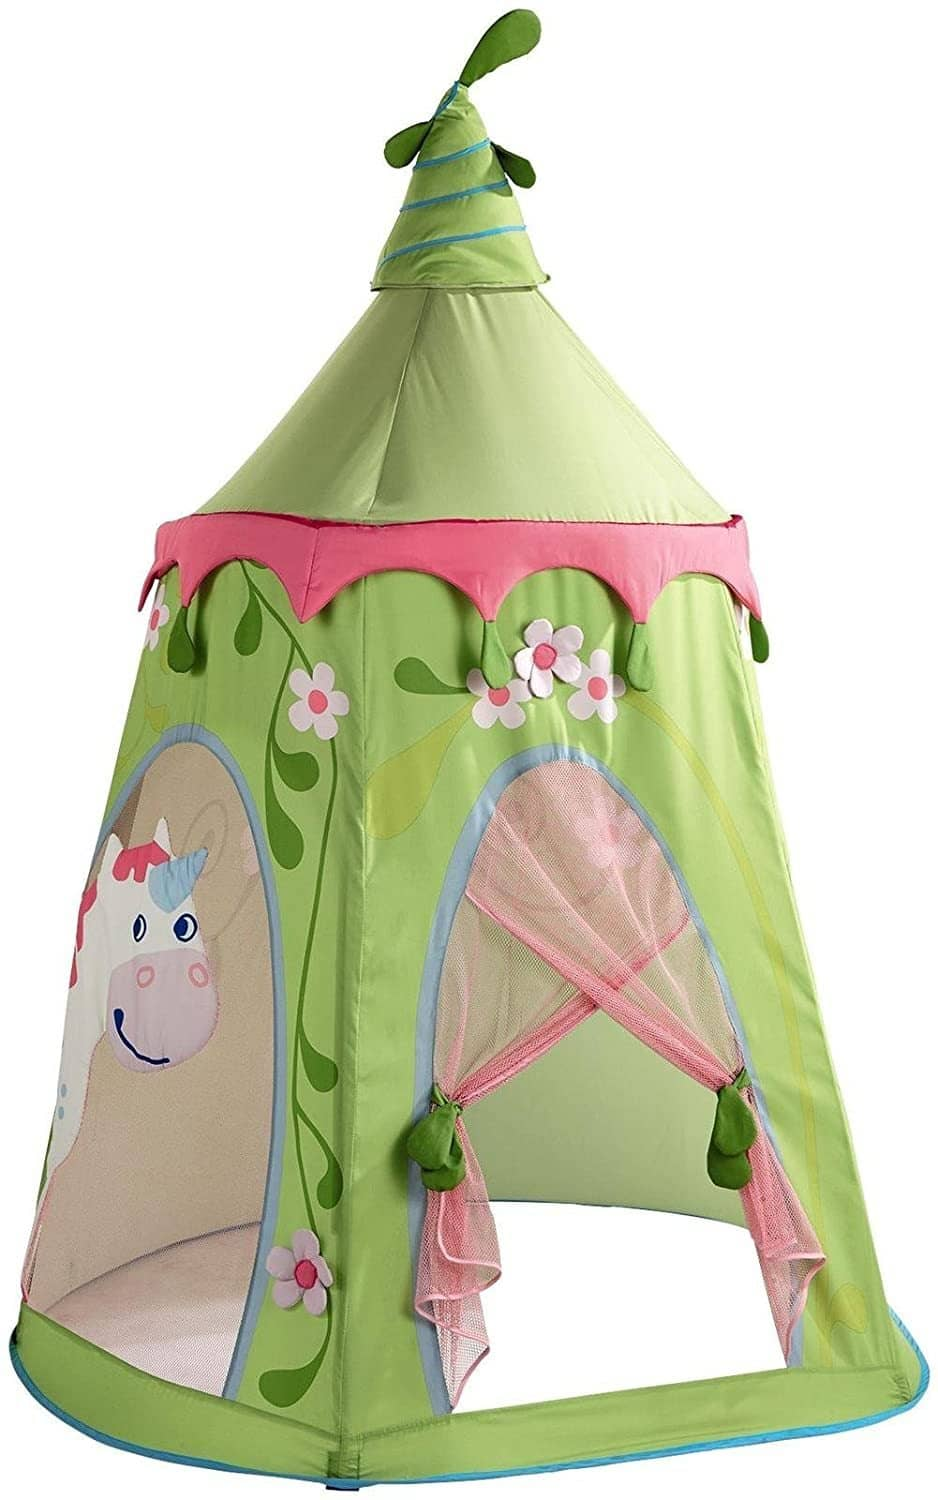 Fairy Garden Play Tent - Whimsical And Roomy Stands 75 Inches Tall-Kidding Around NYC